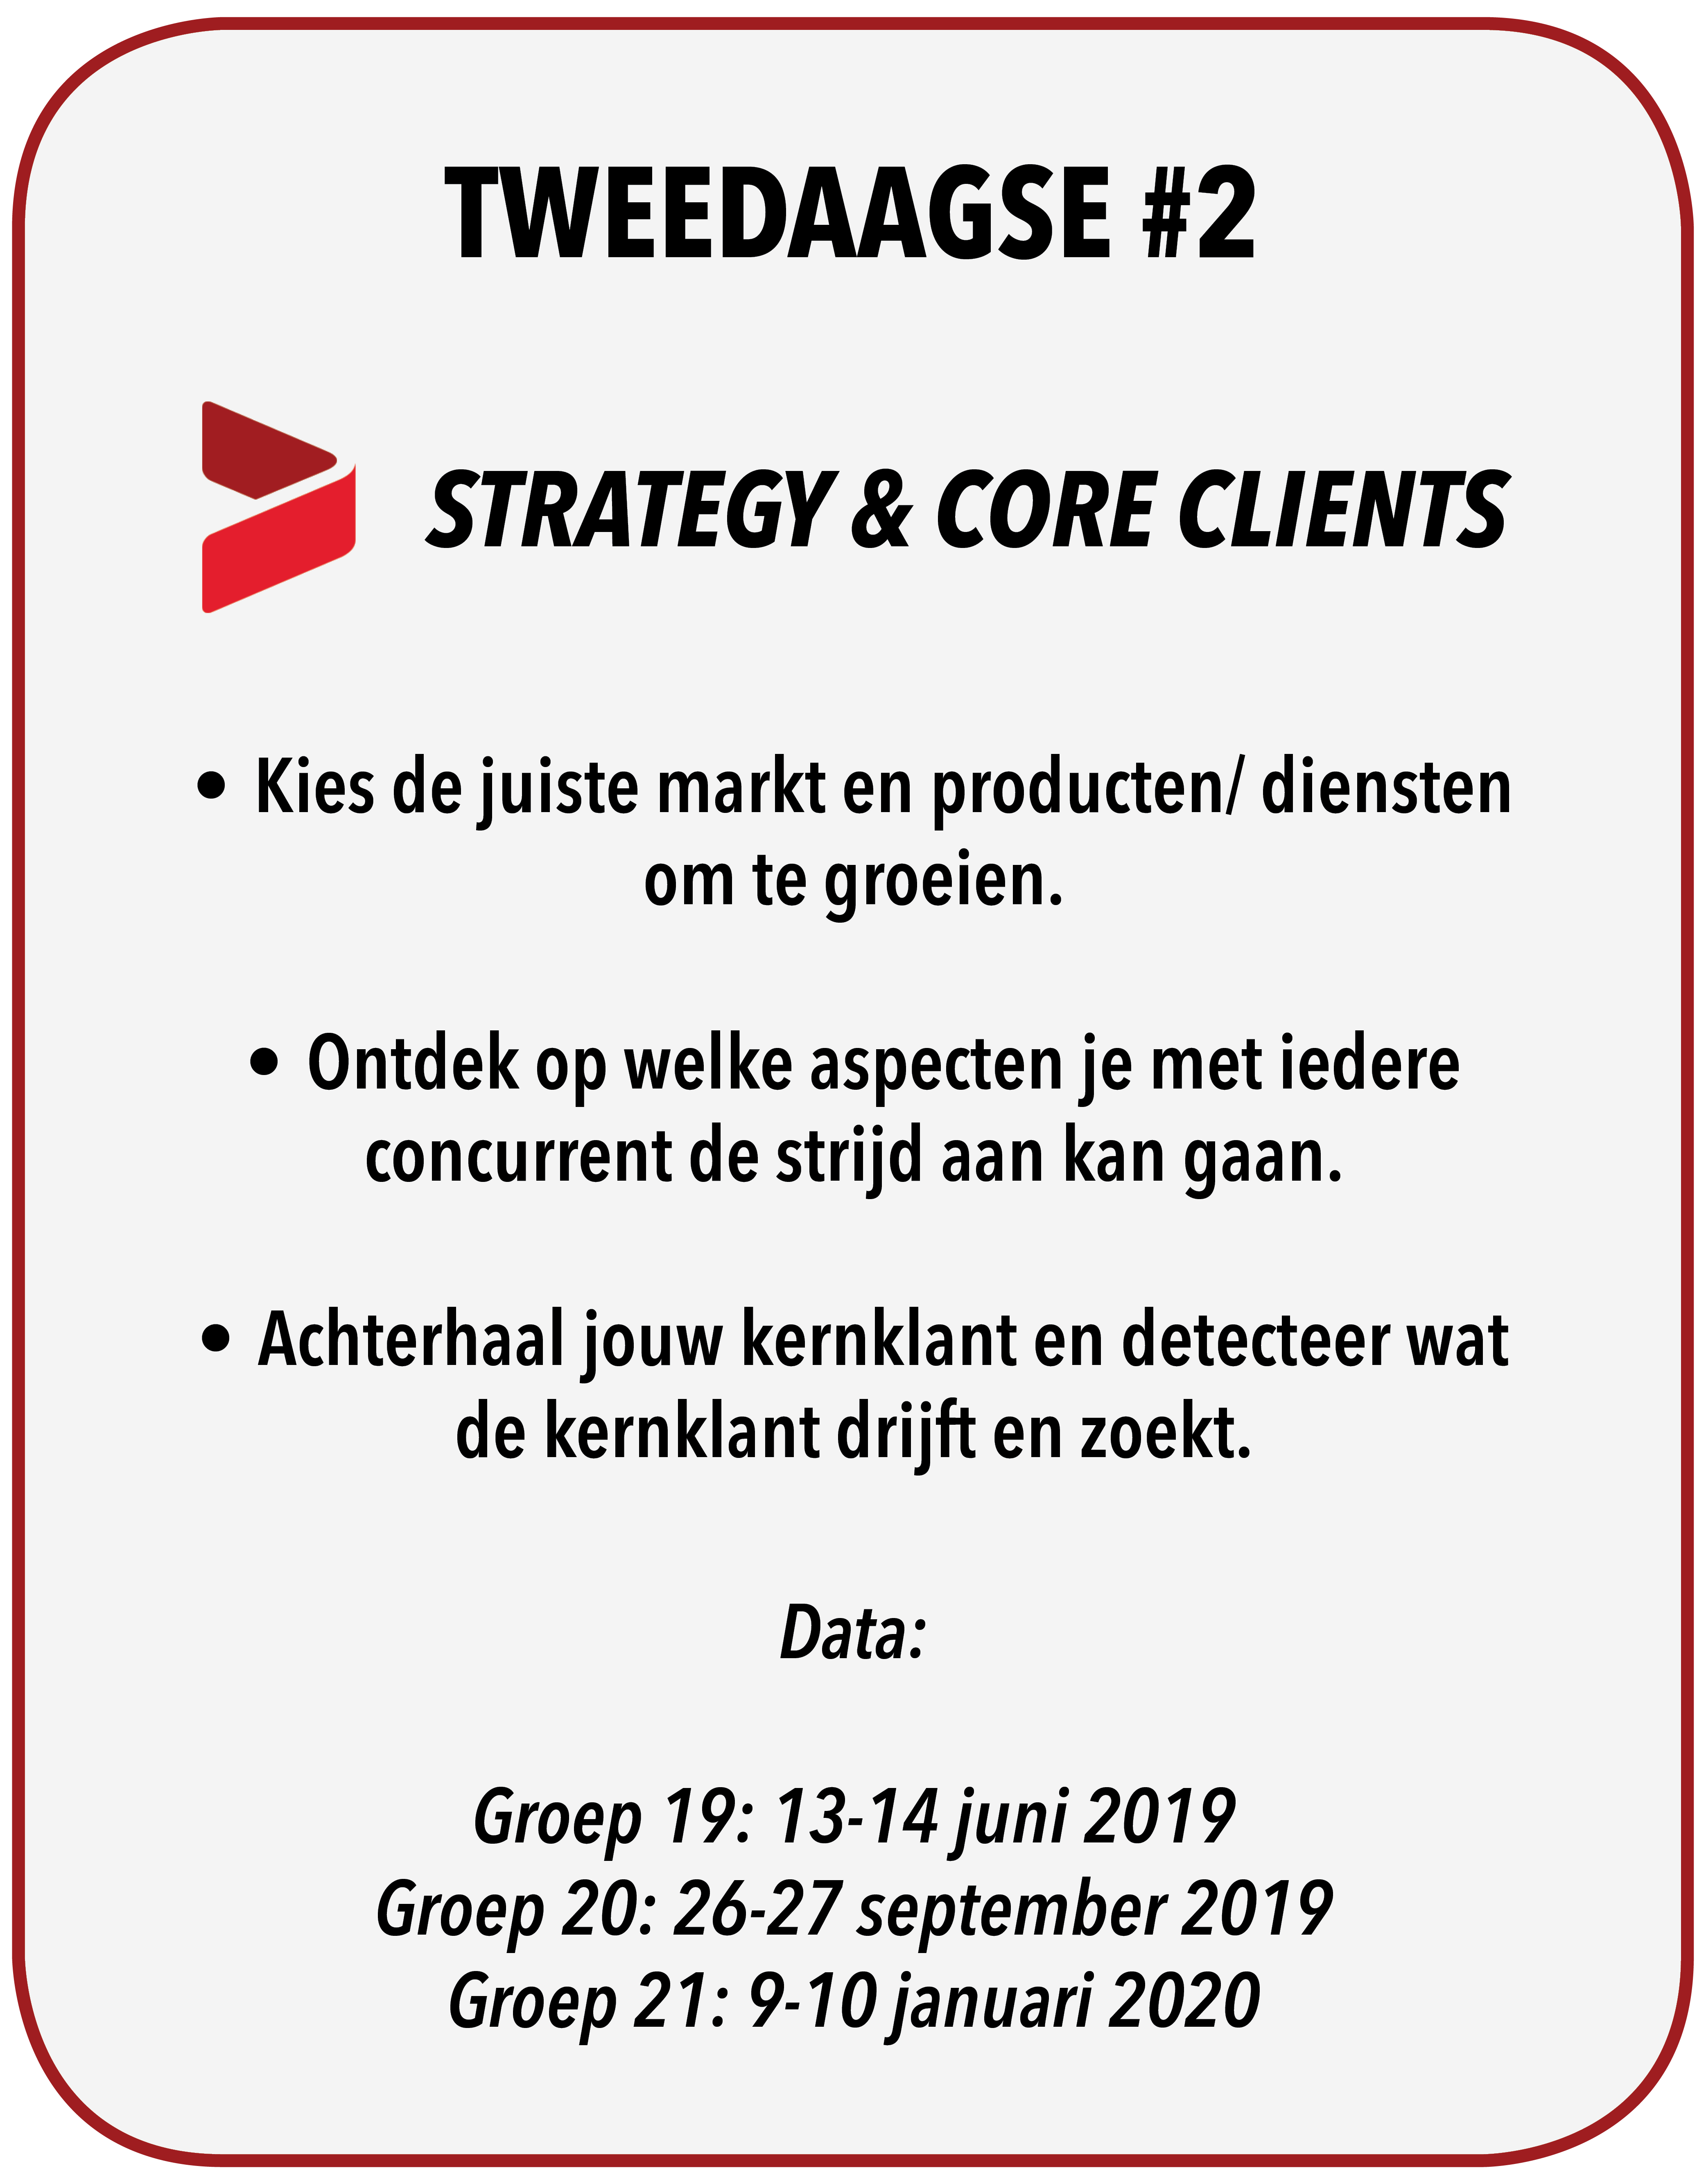 Tweedaagse #2 – Strategy & Core Clients!